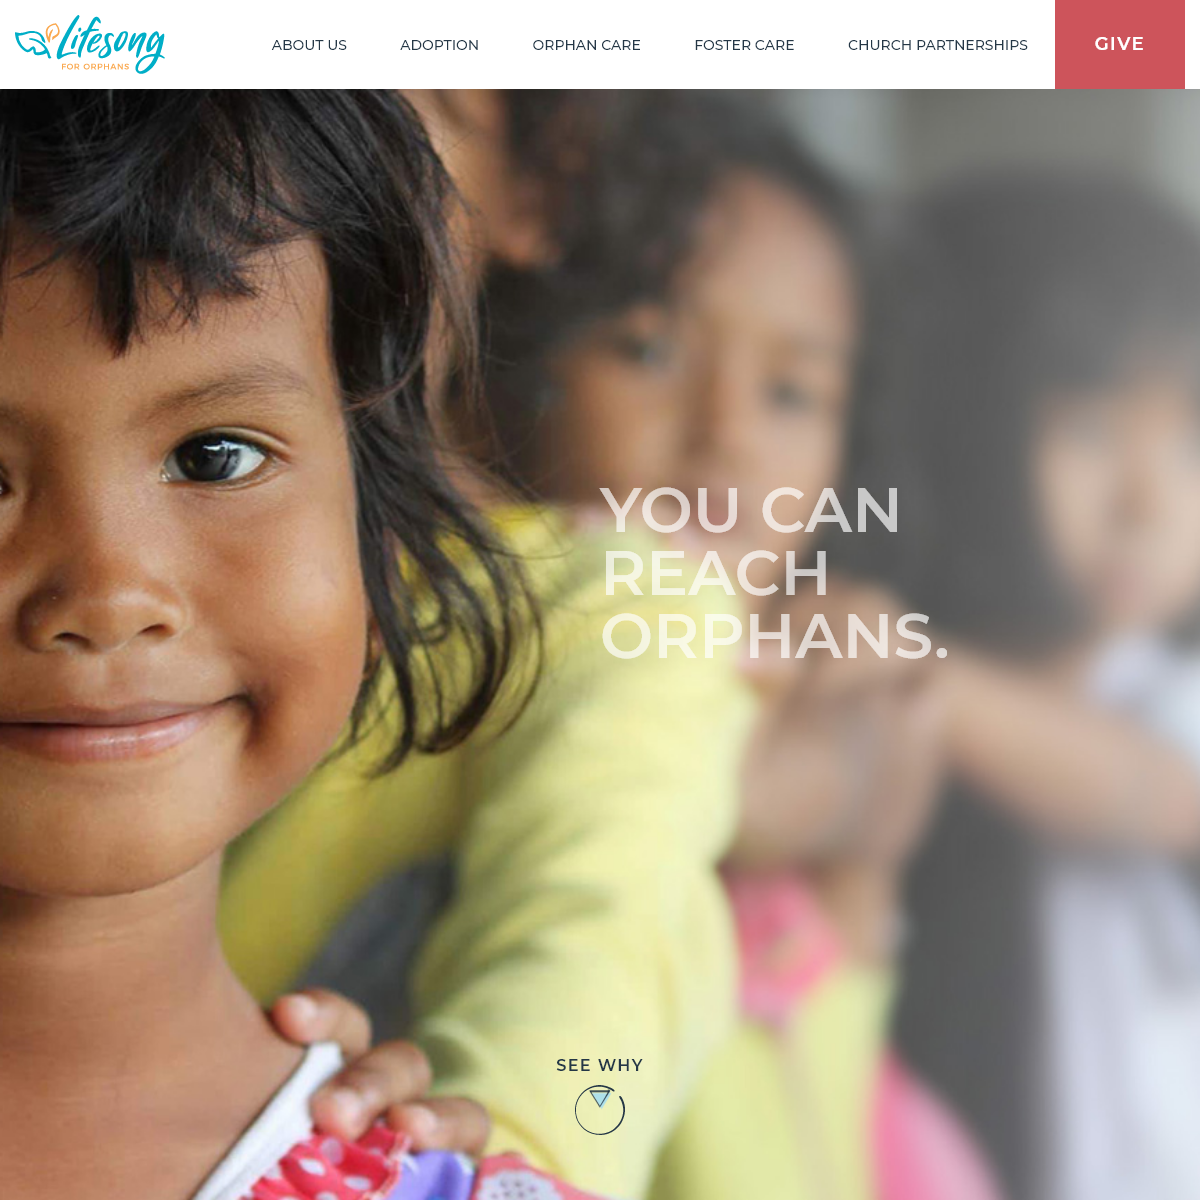 Home - Lifesong for Orphans